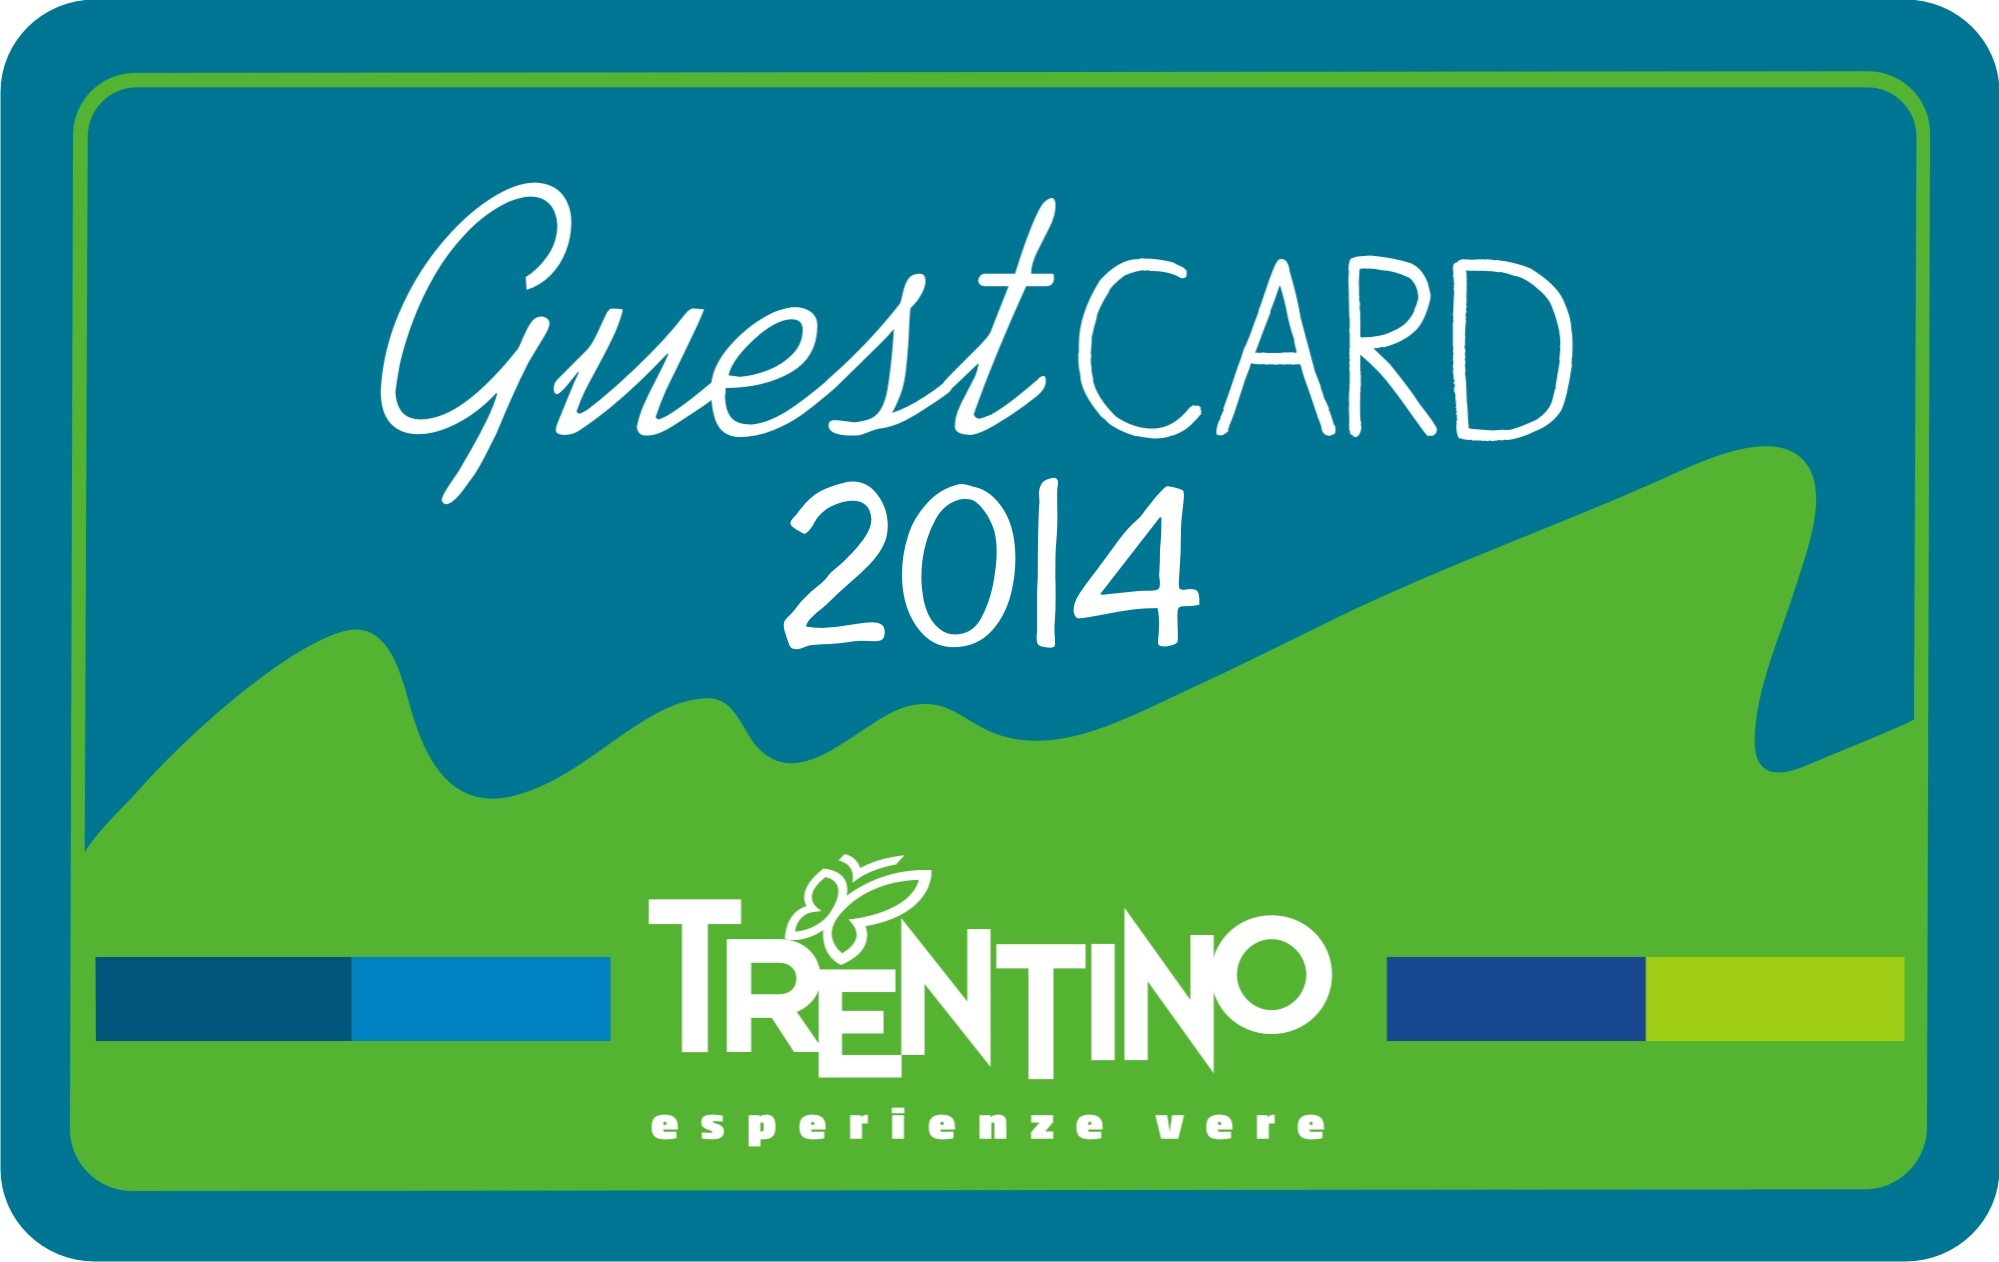 Guest Card 2014